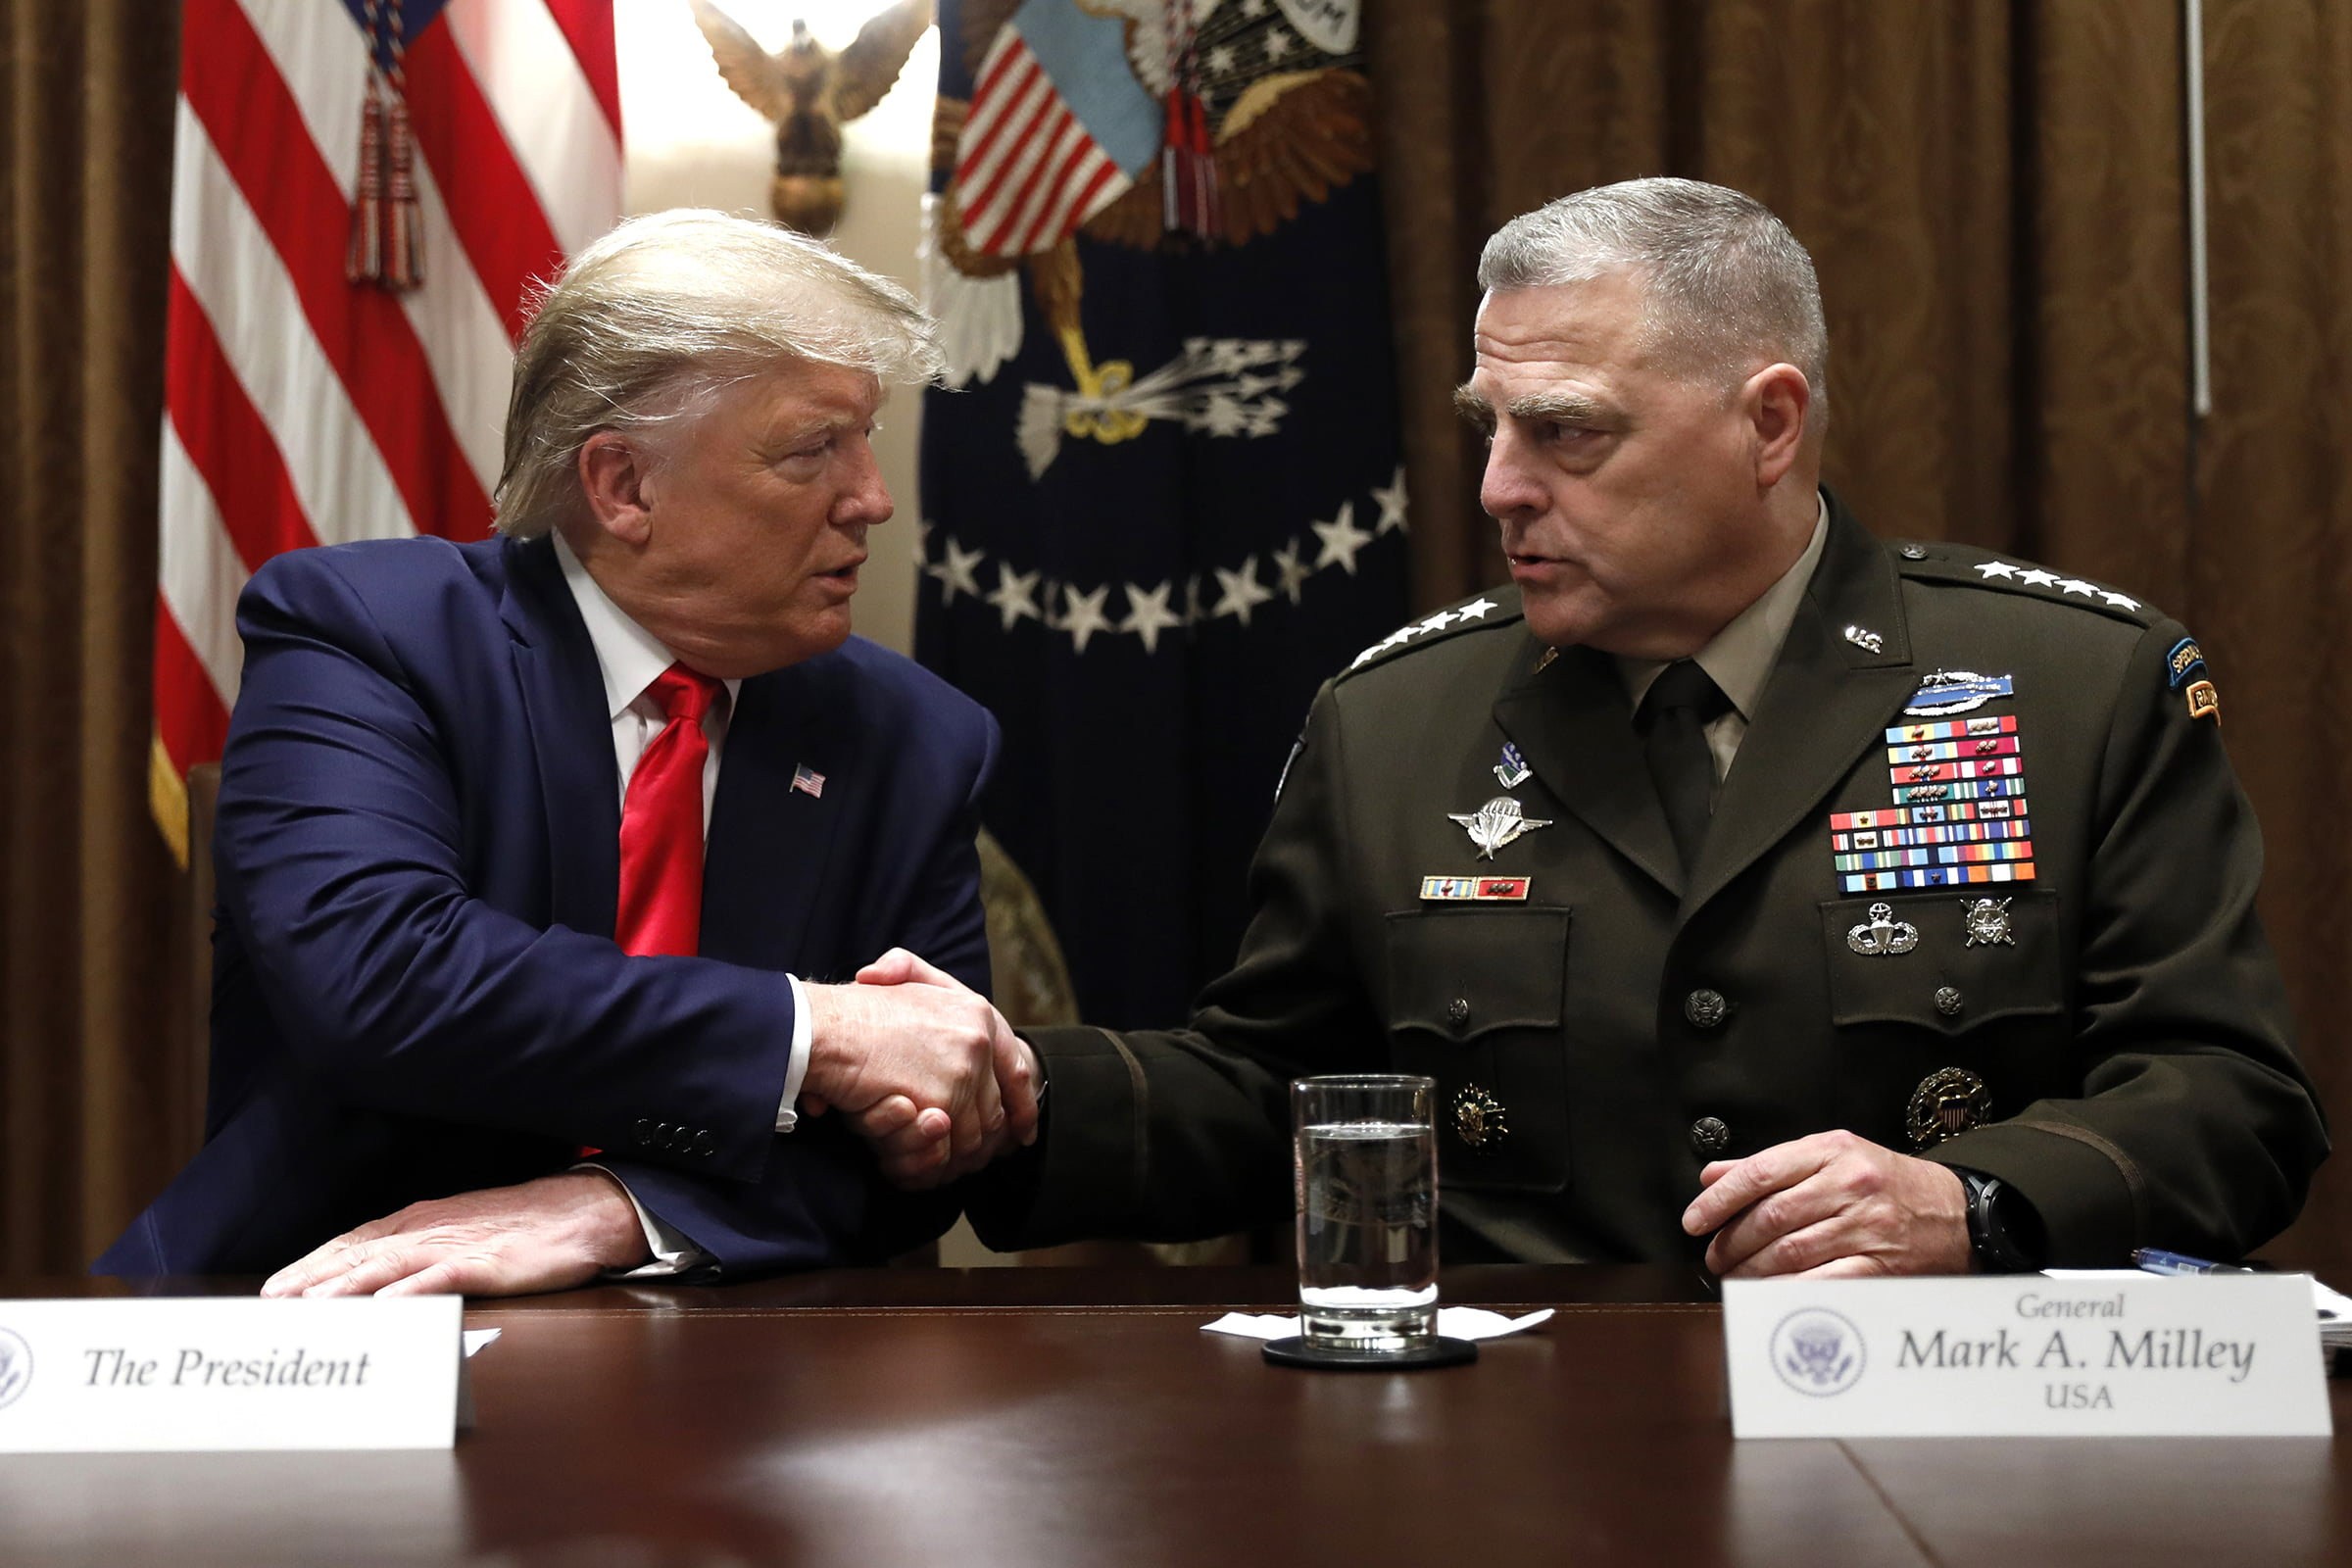 Trump's unilateral power to withdraw from treaties comes from Congress